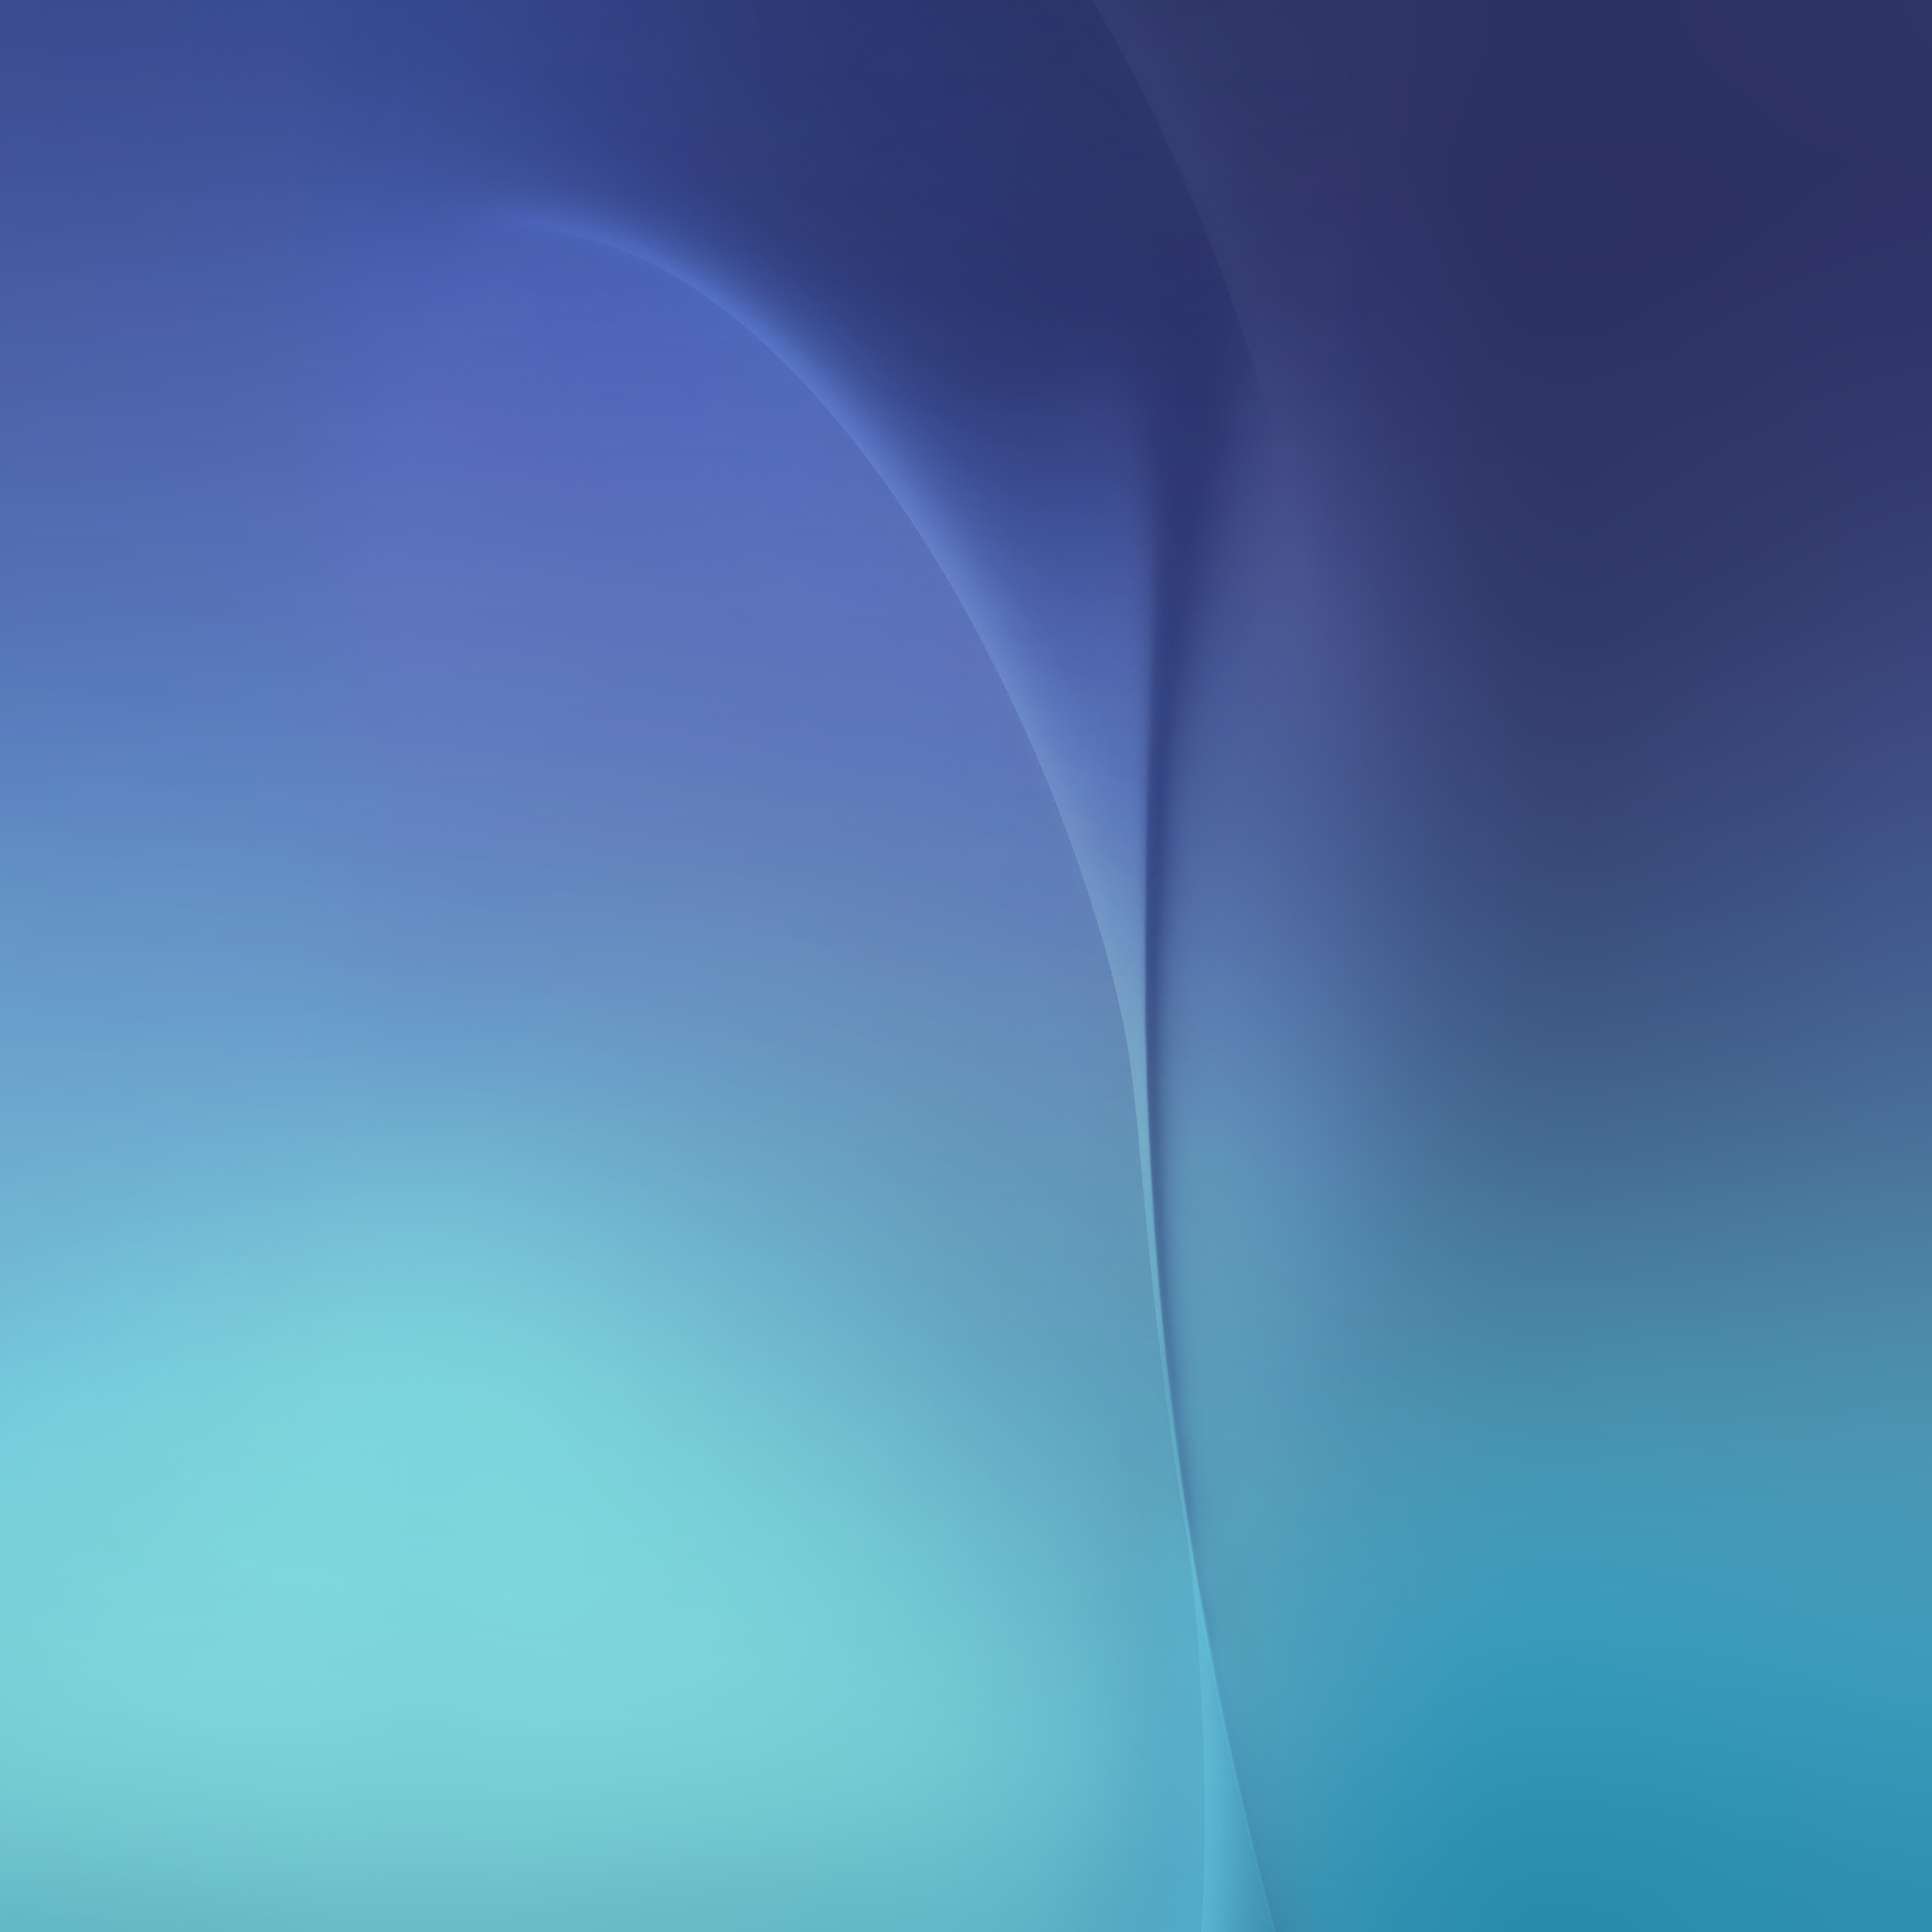 Galaxy S6 Stock Wallpapers - Pg. 2